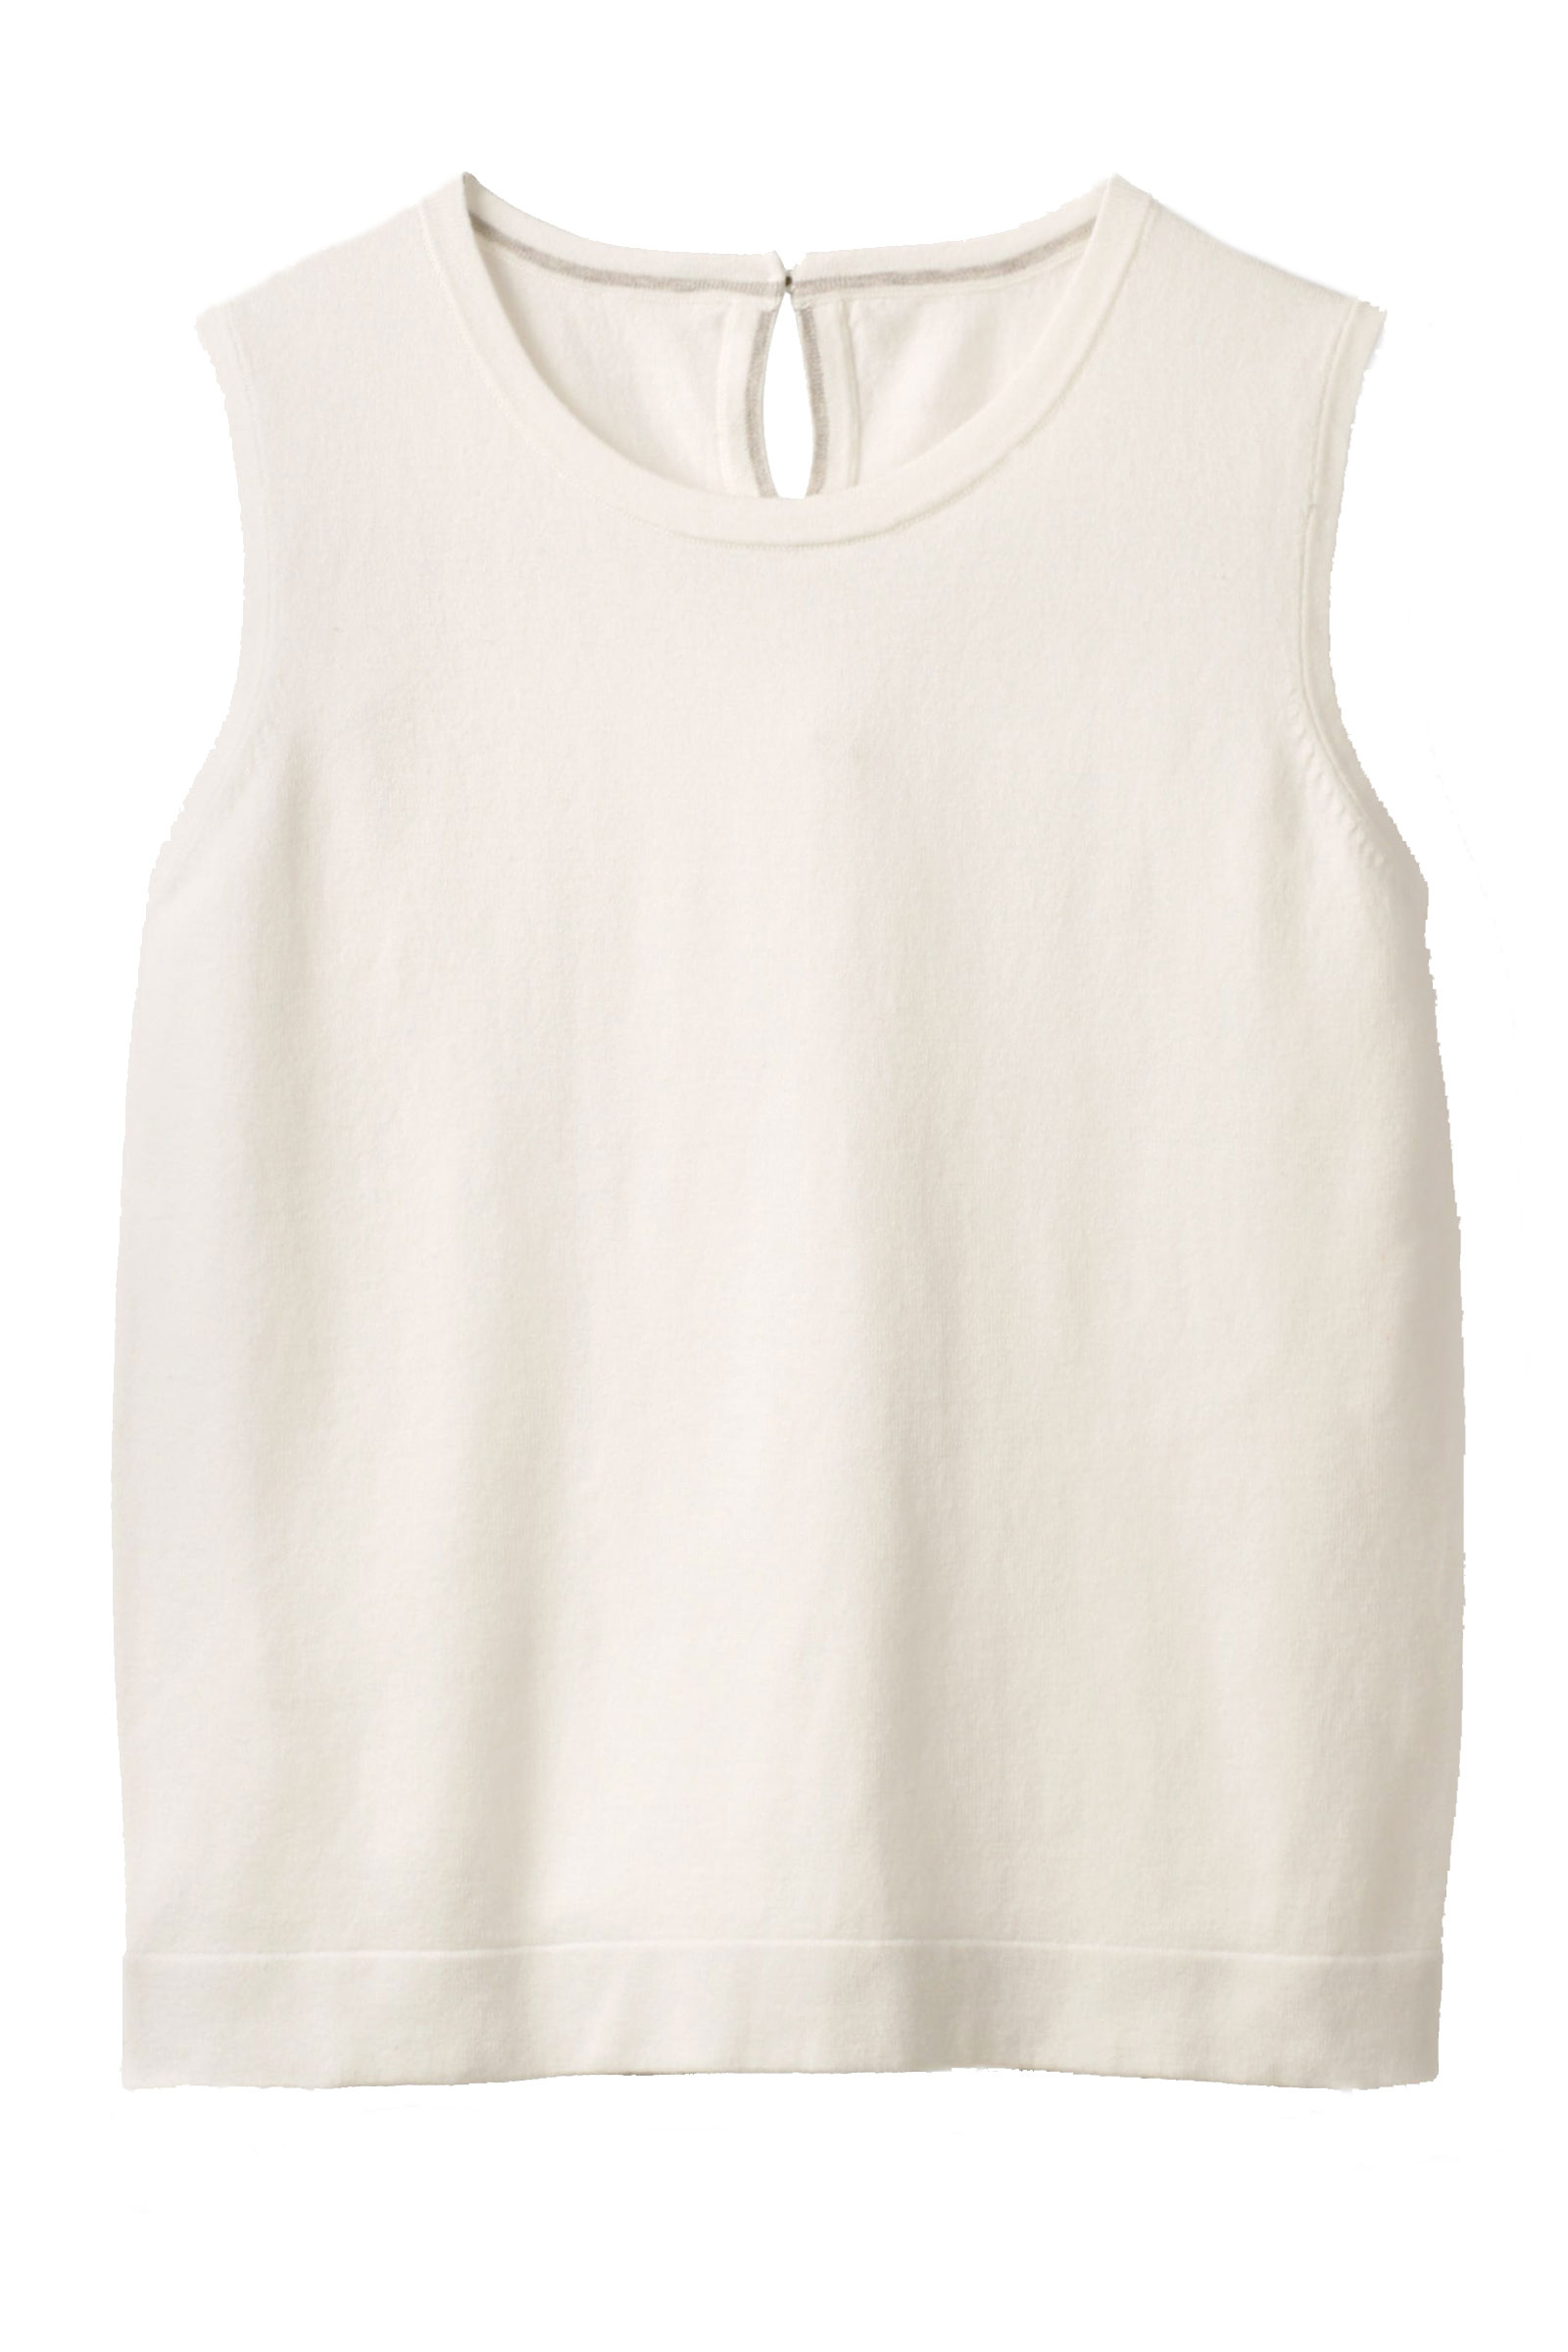 Romance Forever Knitted Tank